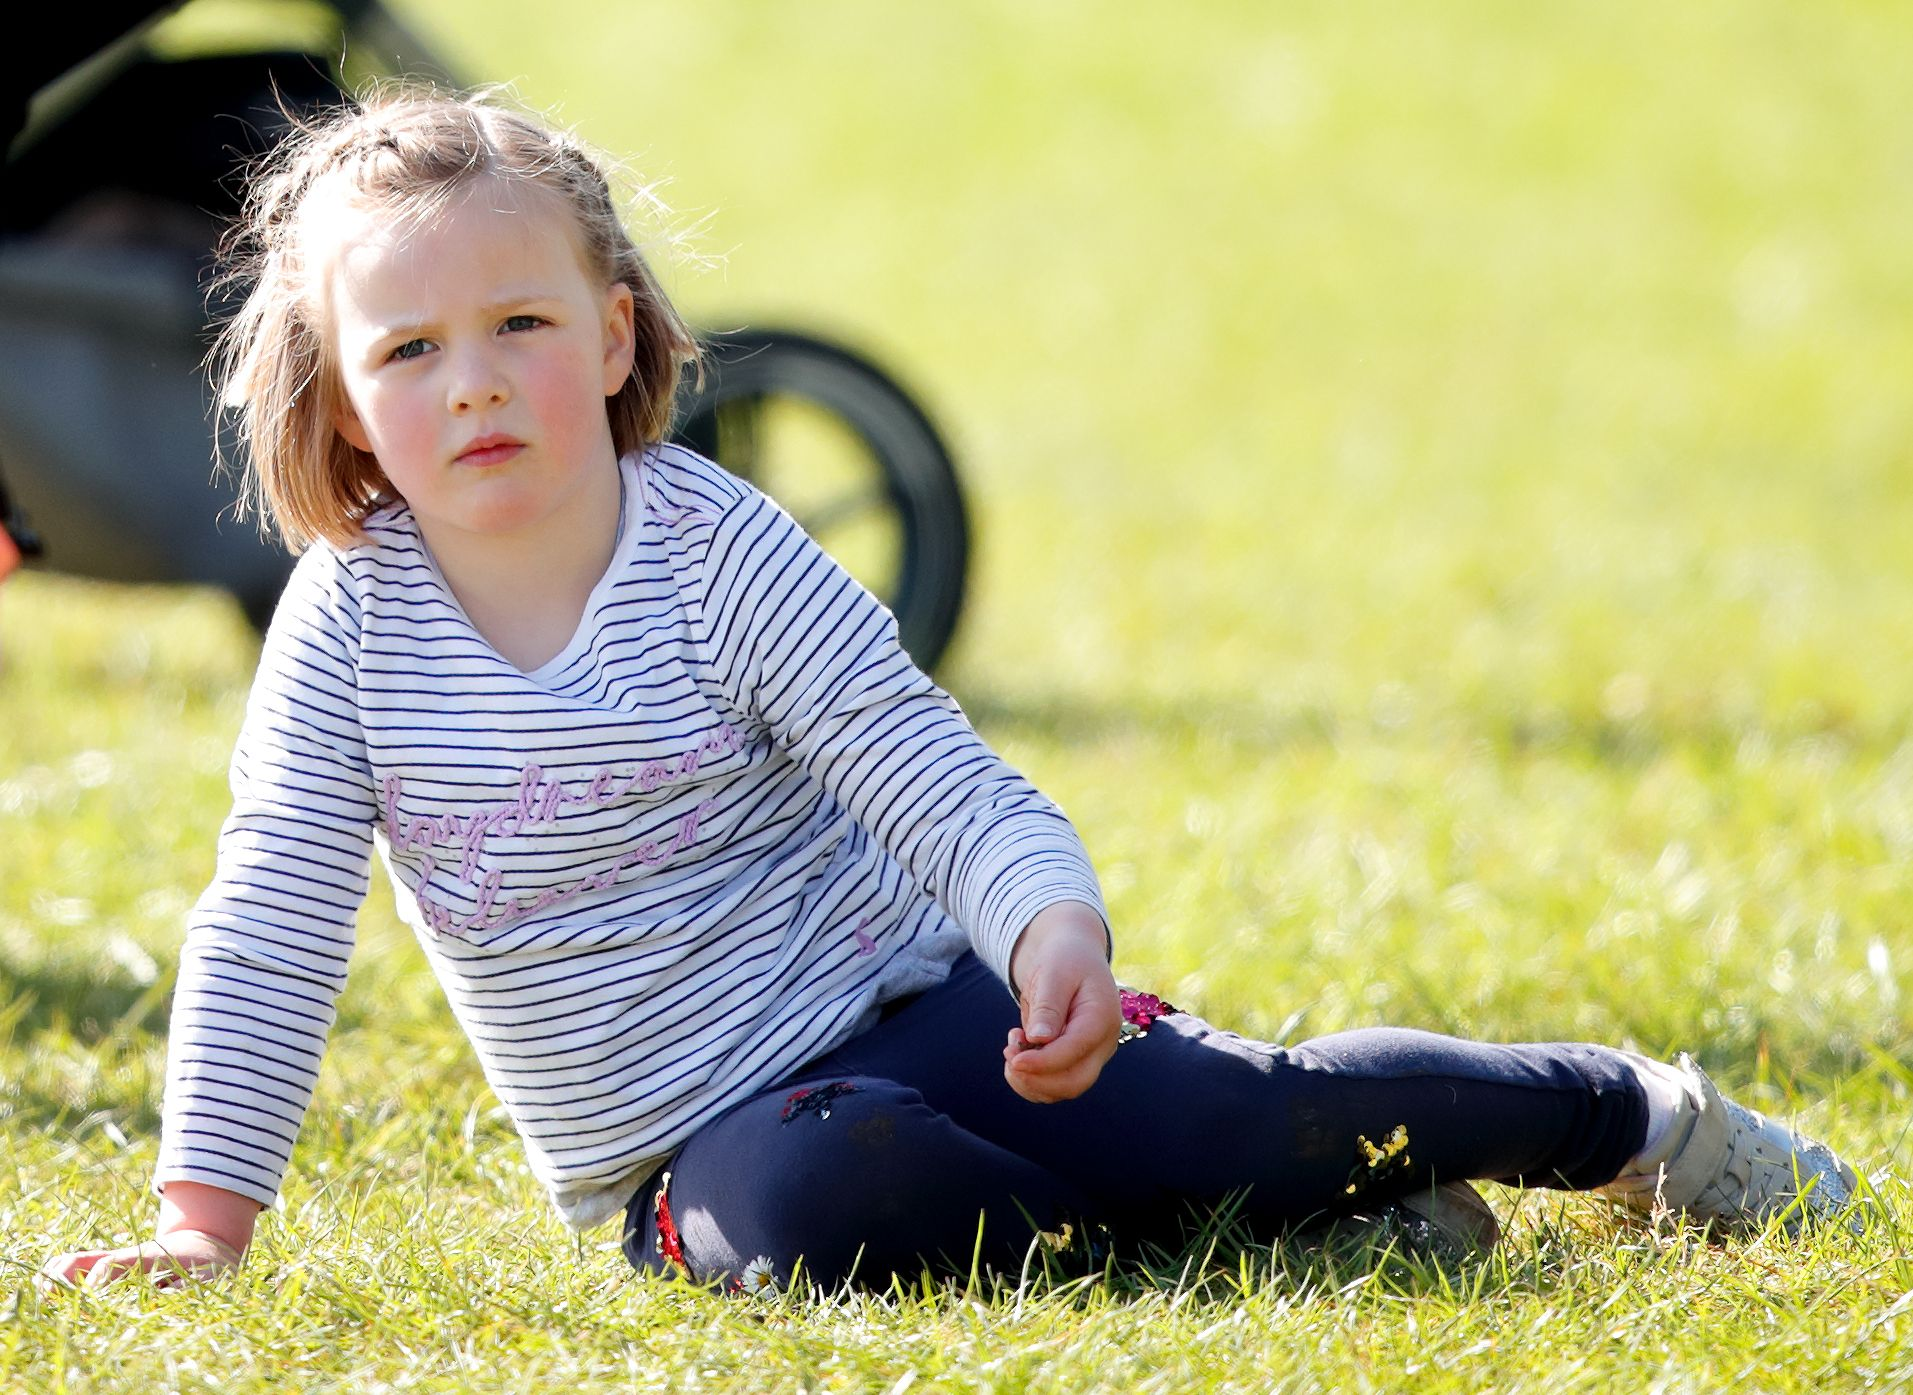 Who Is Mia Tindall, Queen Elizabeth's Great-Granddaughter? - Facts About Mia  Grace Tindall